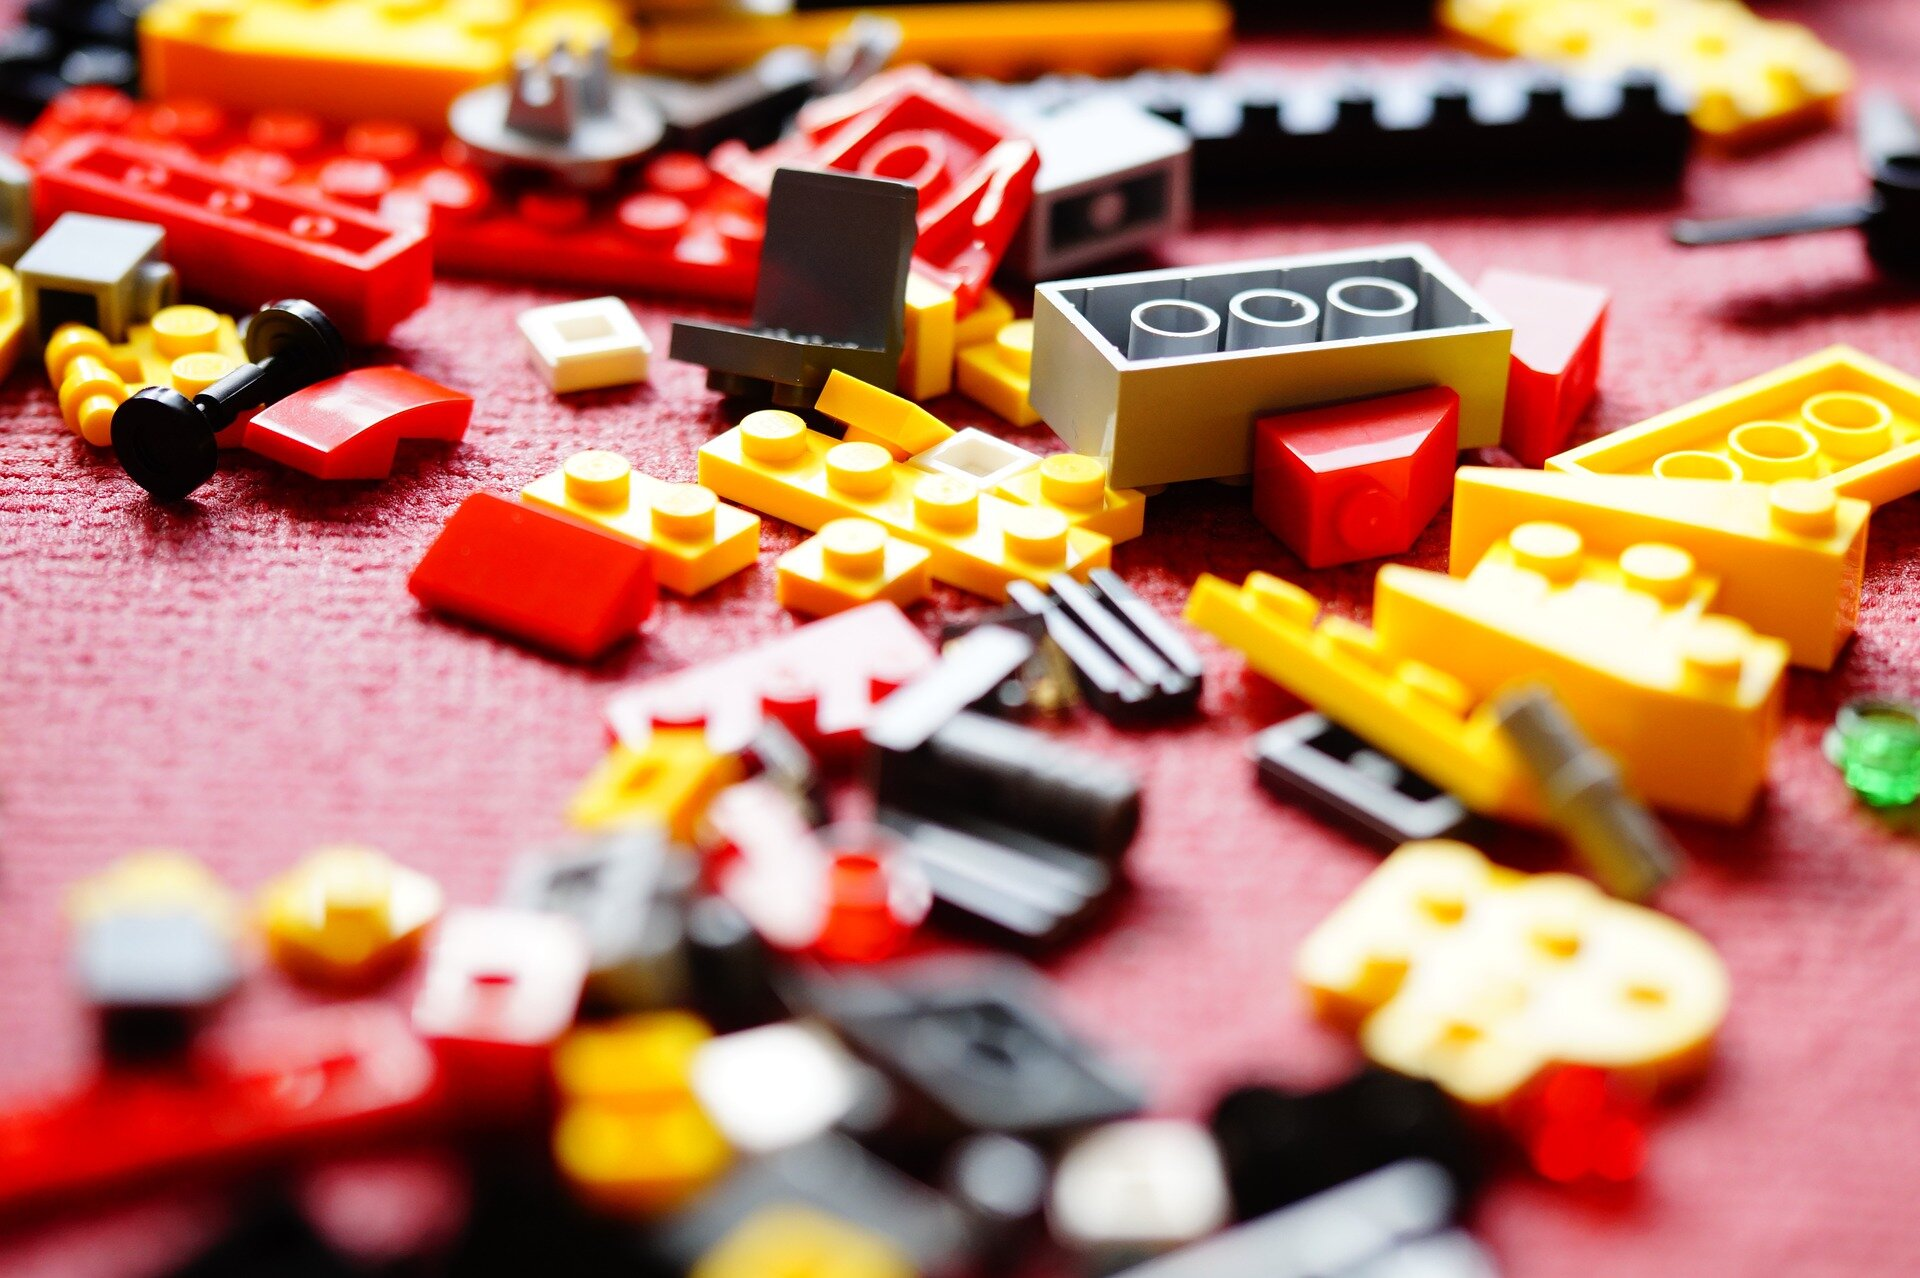 New Lego-like beams could revolutionize construction